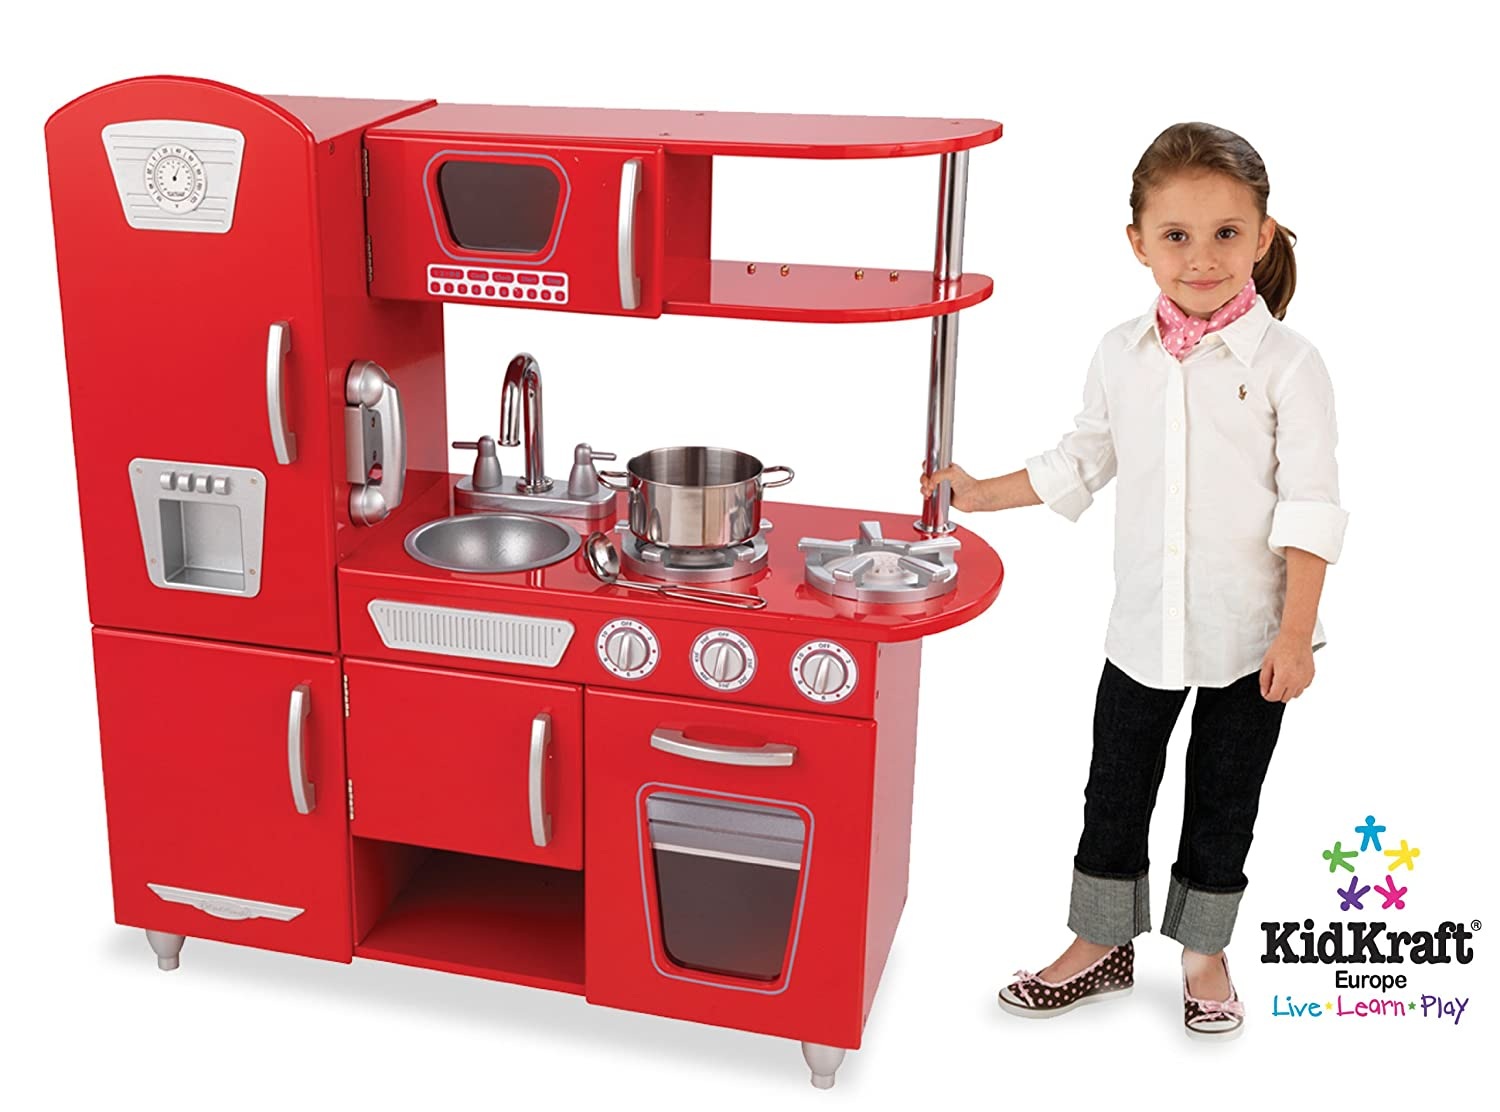 amazoncom kidkraft red vintage kitchen toys  games -